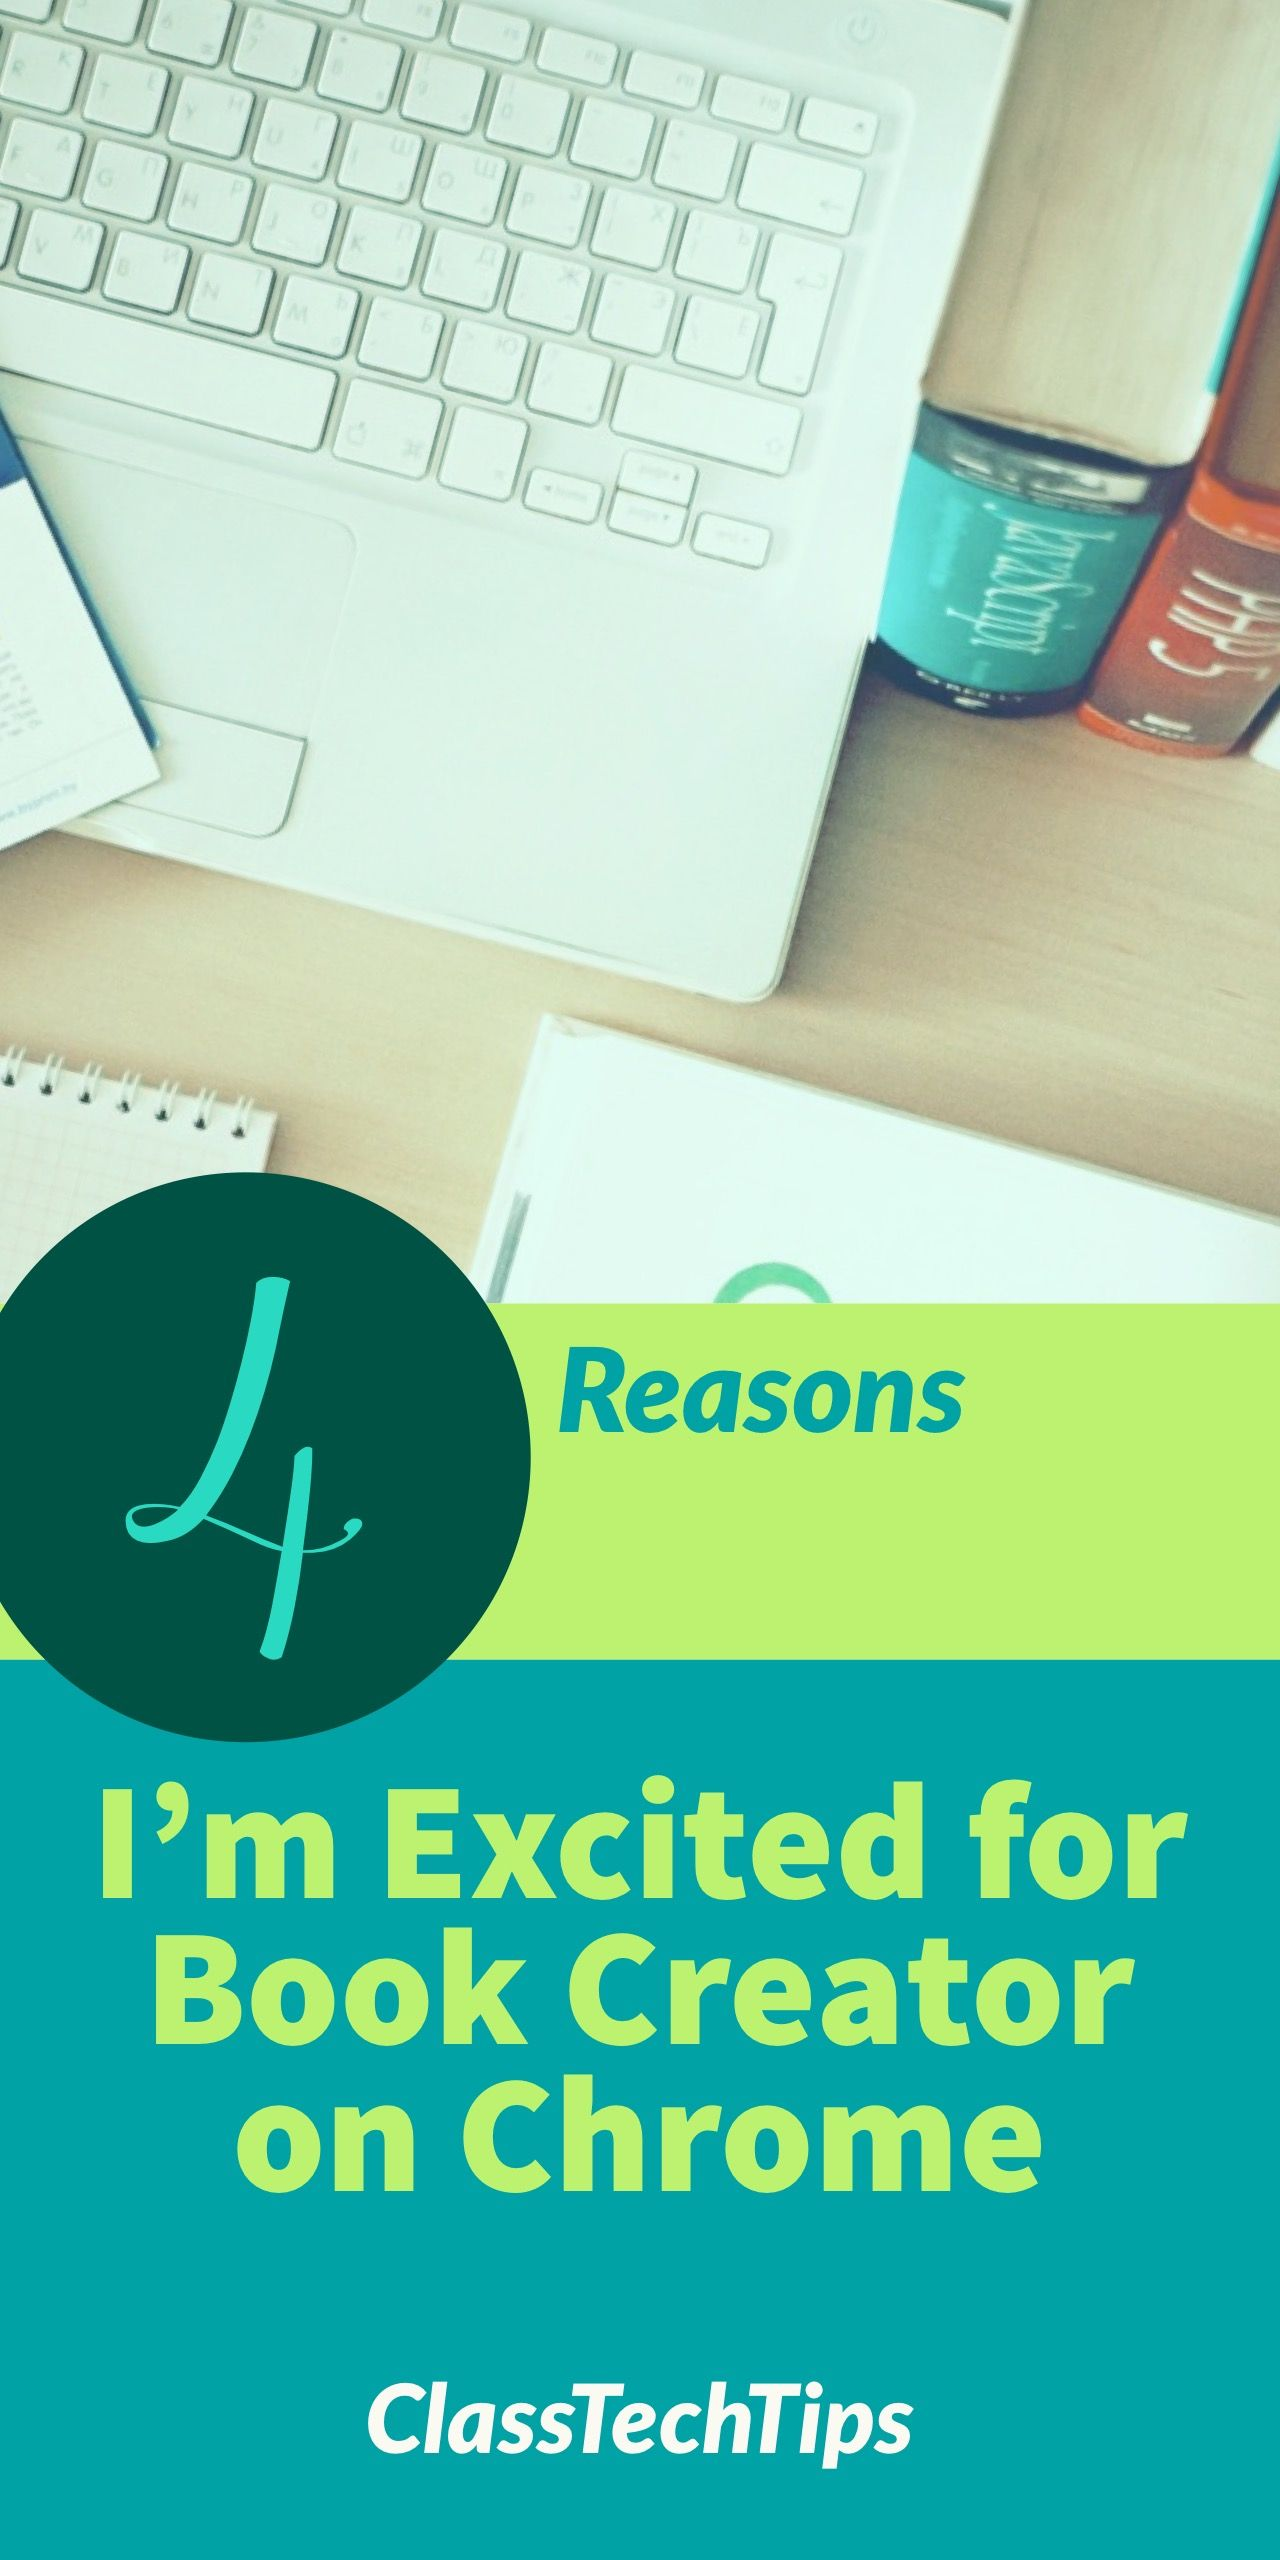 4 Reasons I'm Excited for Book Creator on Chrome Reading